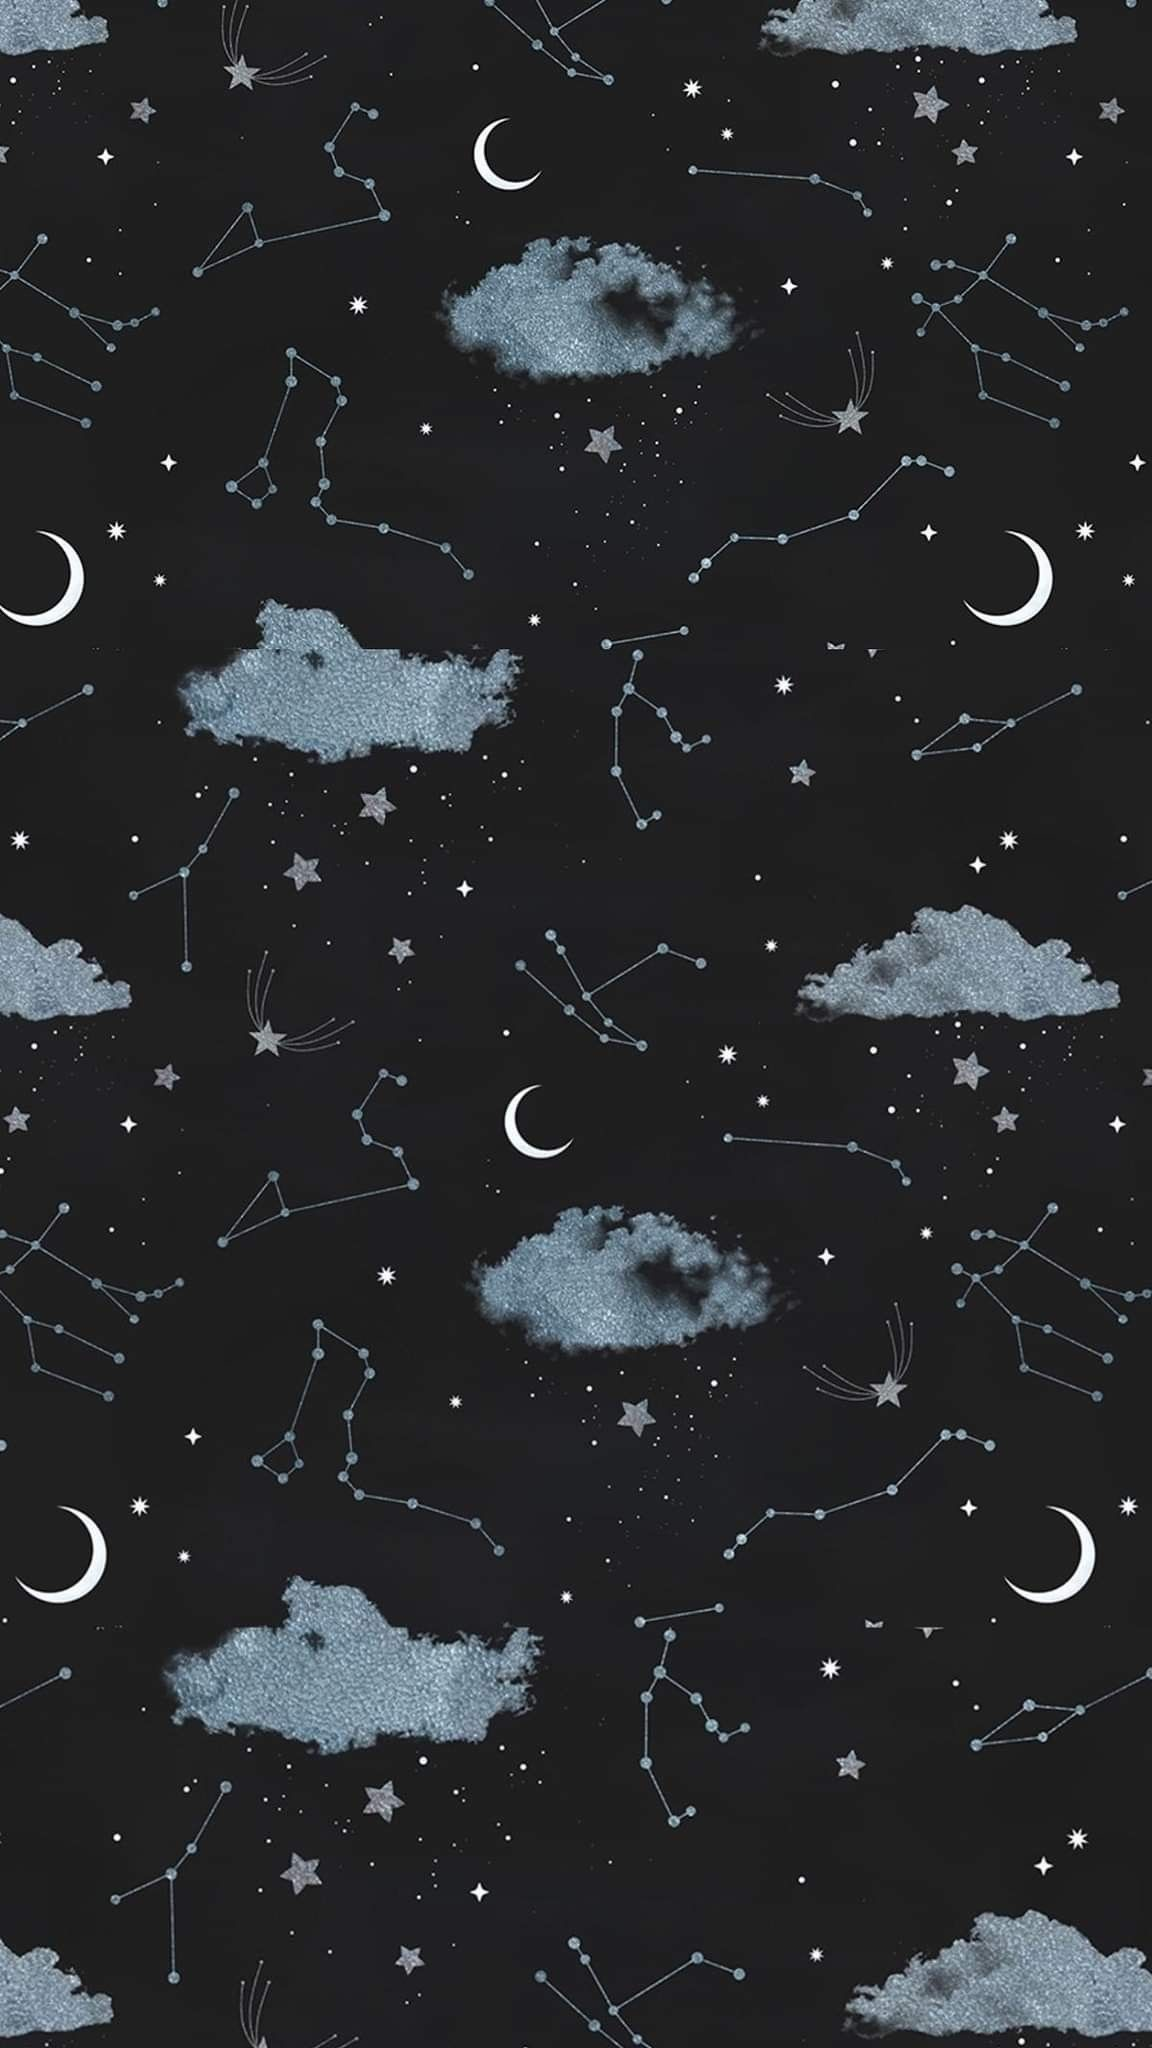 Moon And Star Wallpaper 64 Images